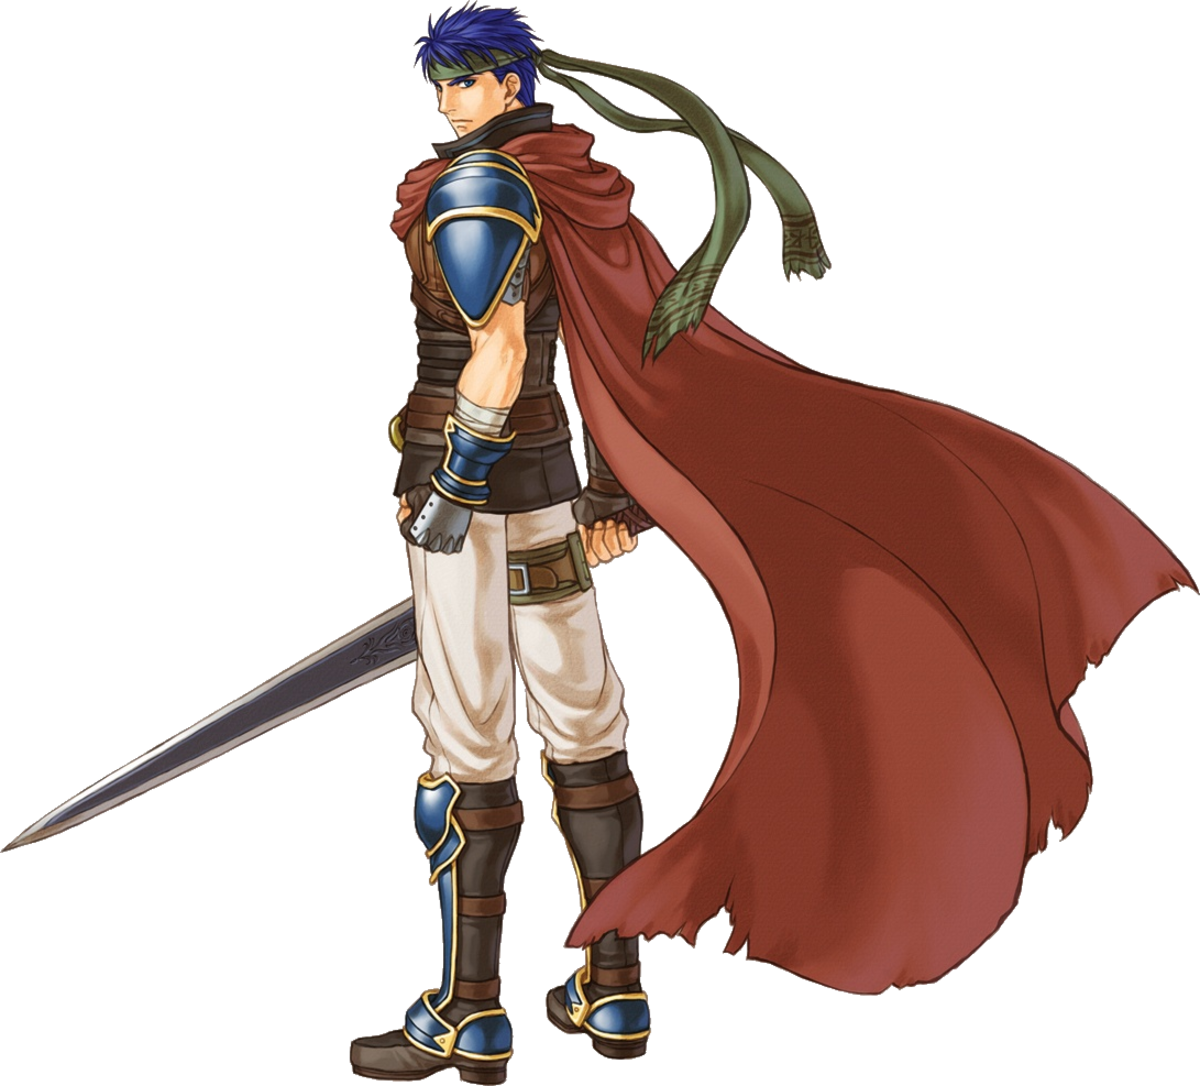 Ike in Radiant Dawn before his disappearance